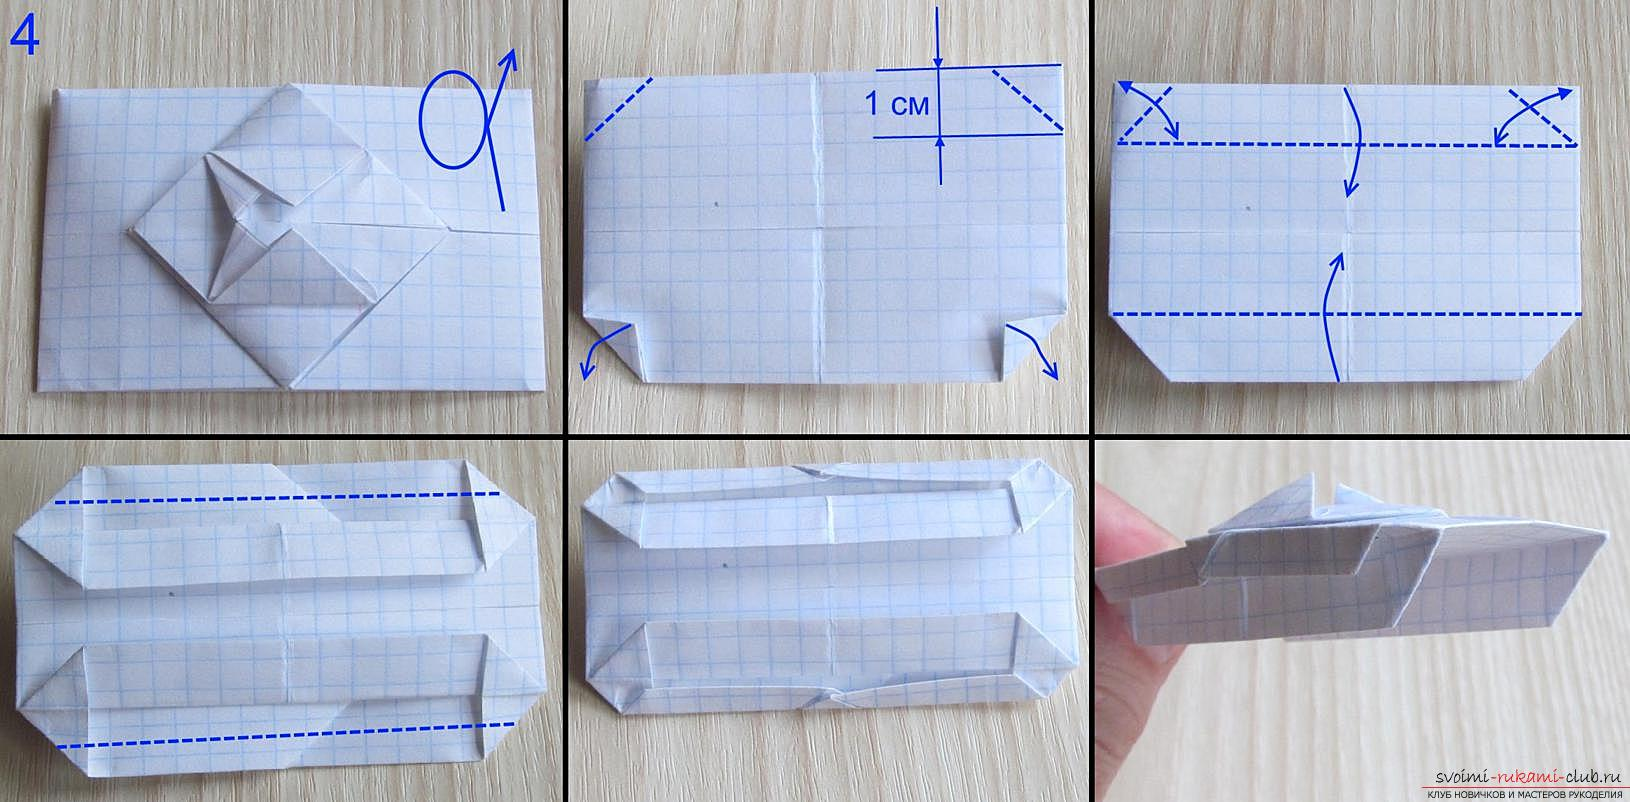 How to make a tank using the origami scheme of paper? Assembly diagram and lesson. Photo # 2